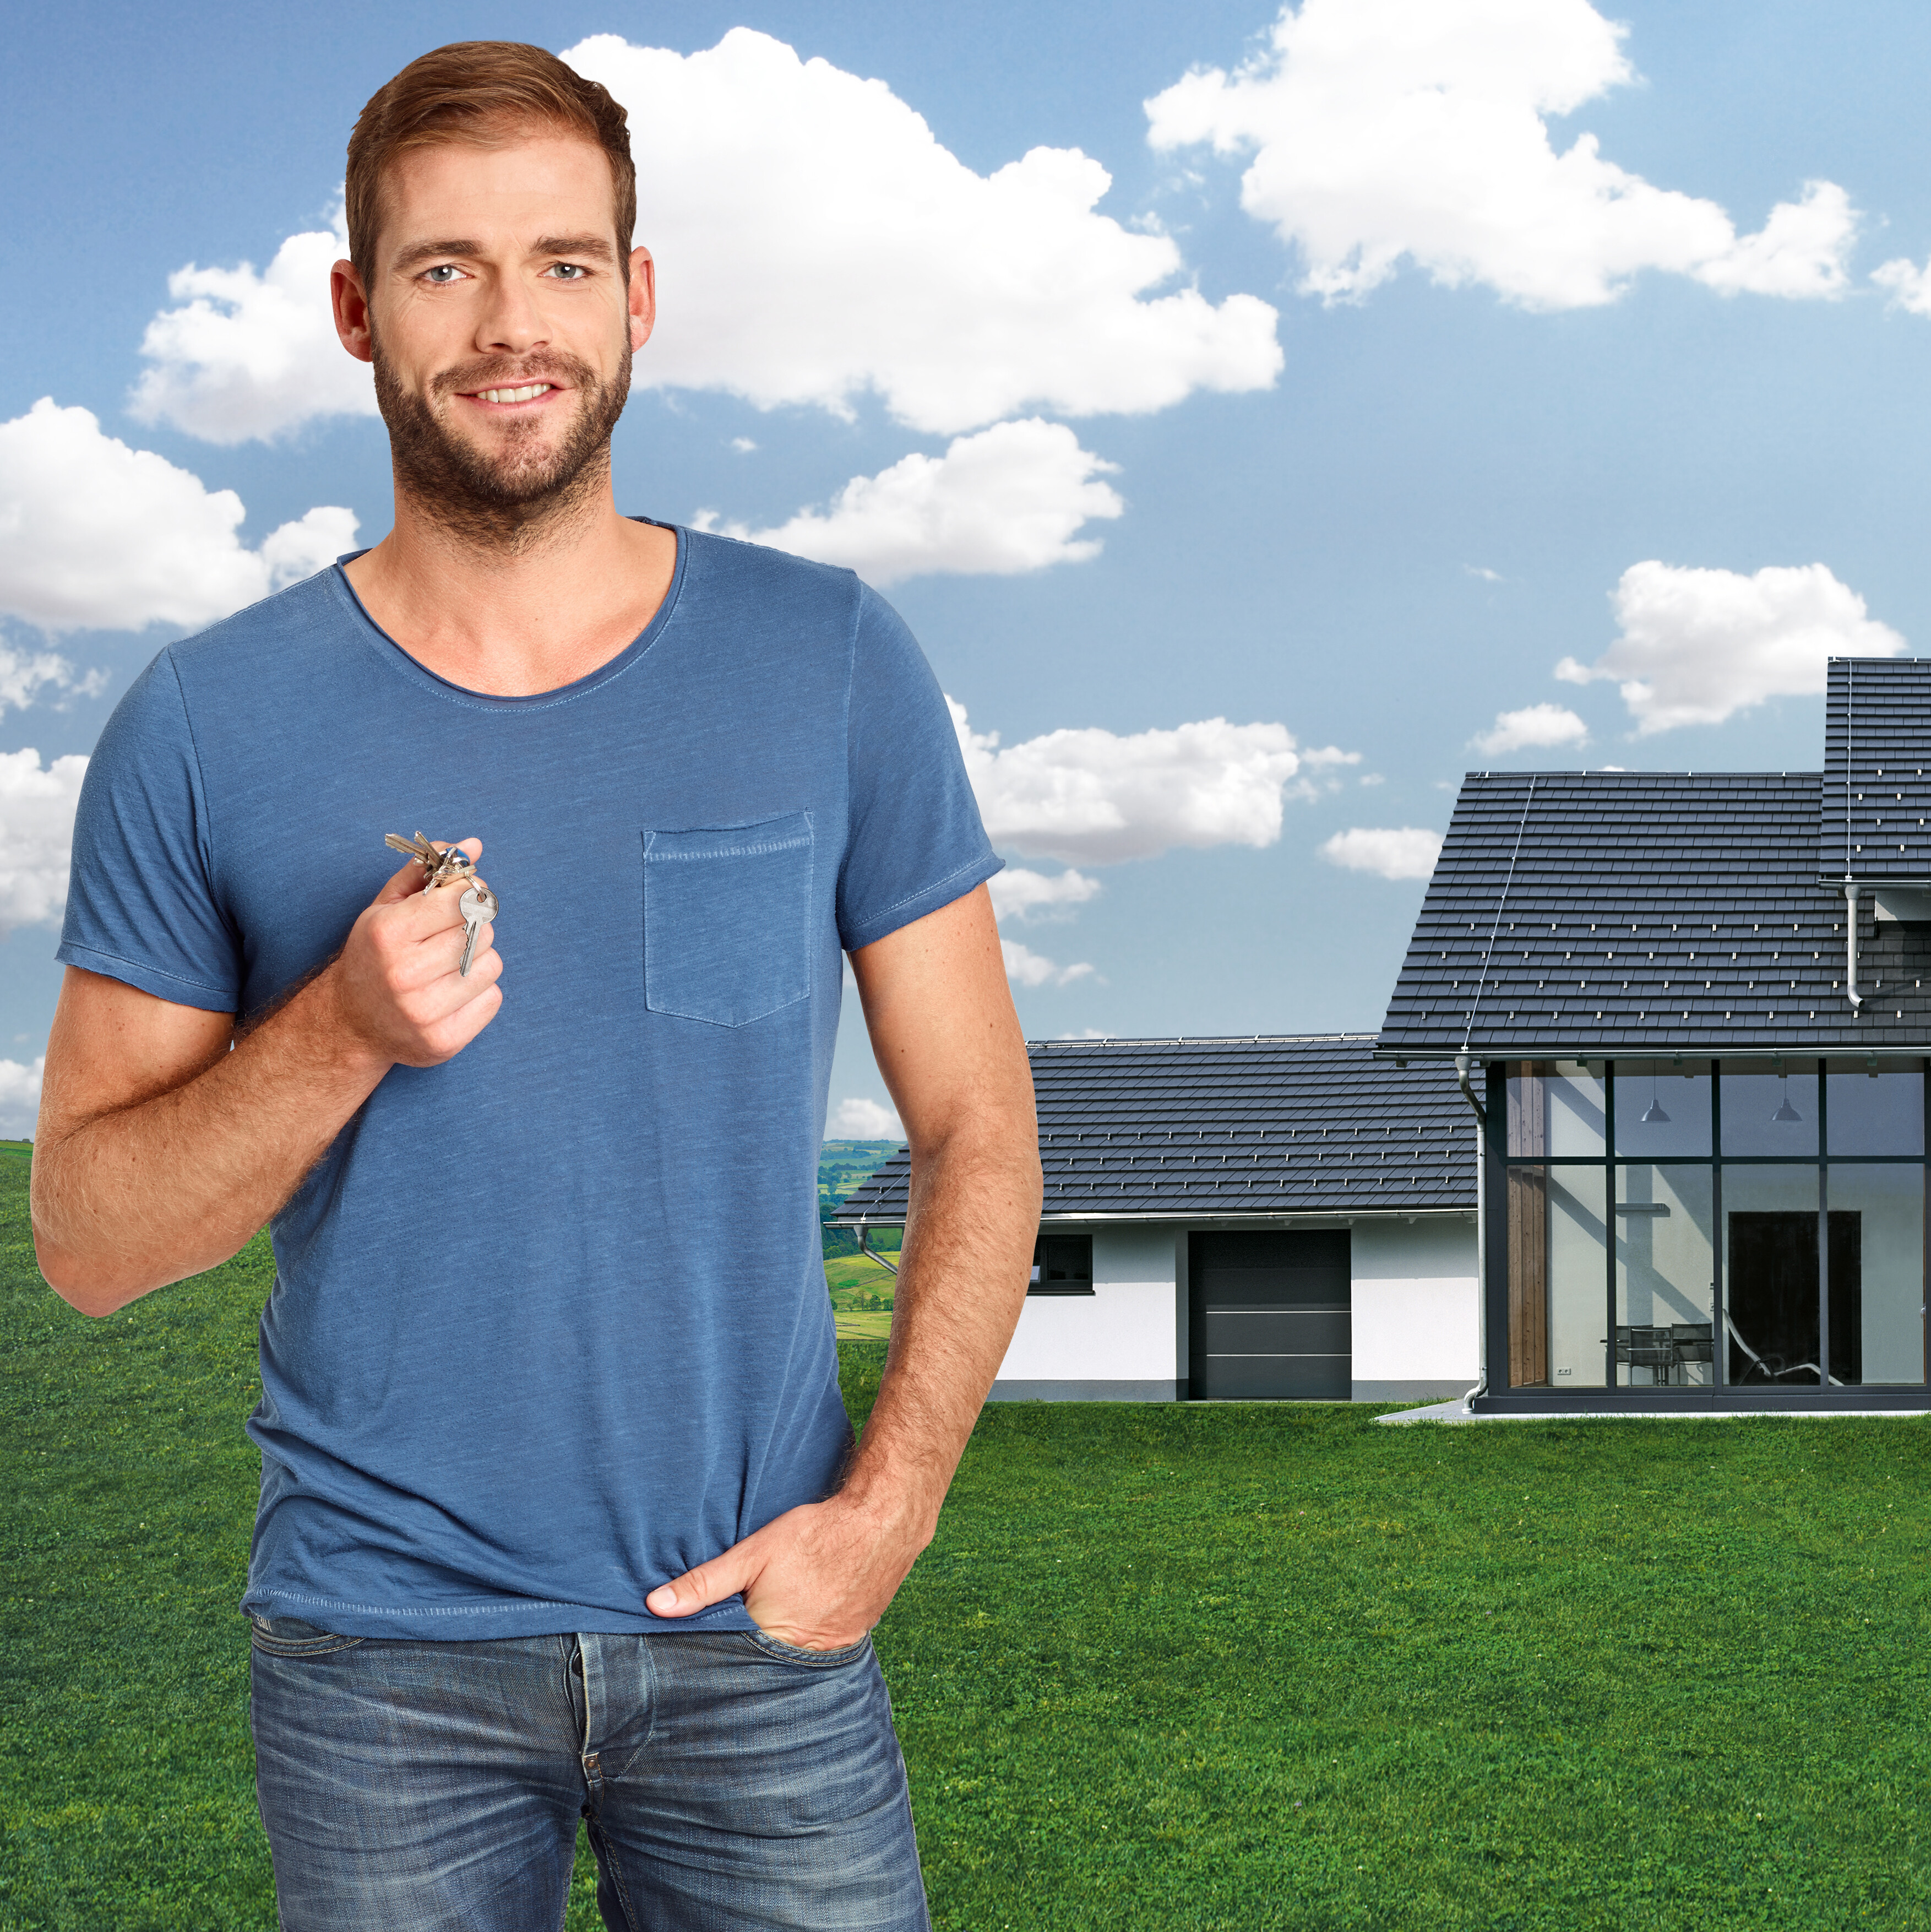 Owner in front of single-family house